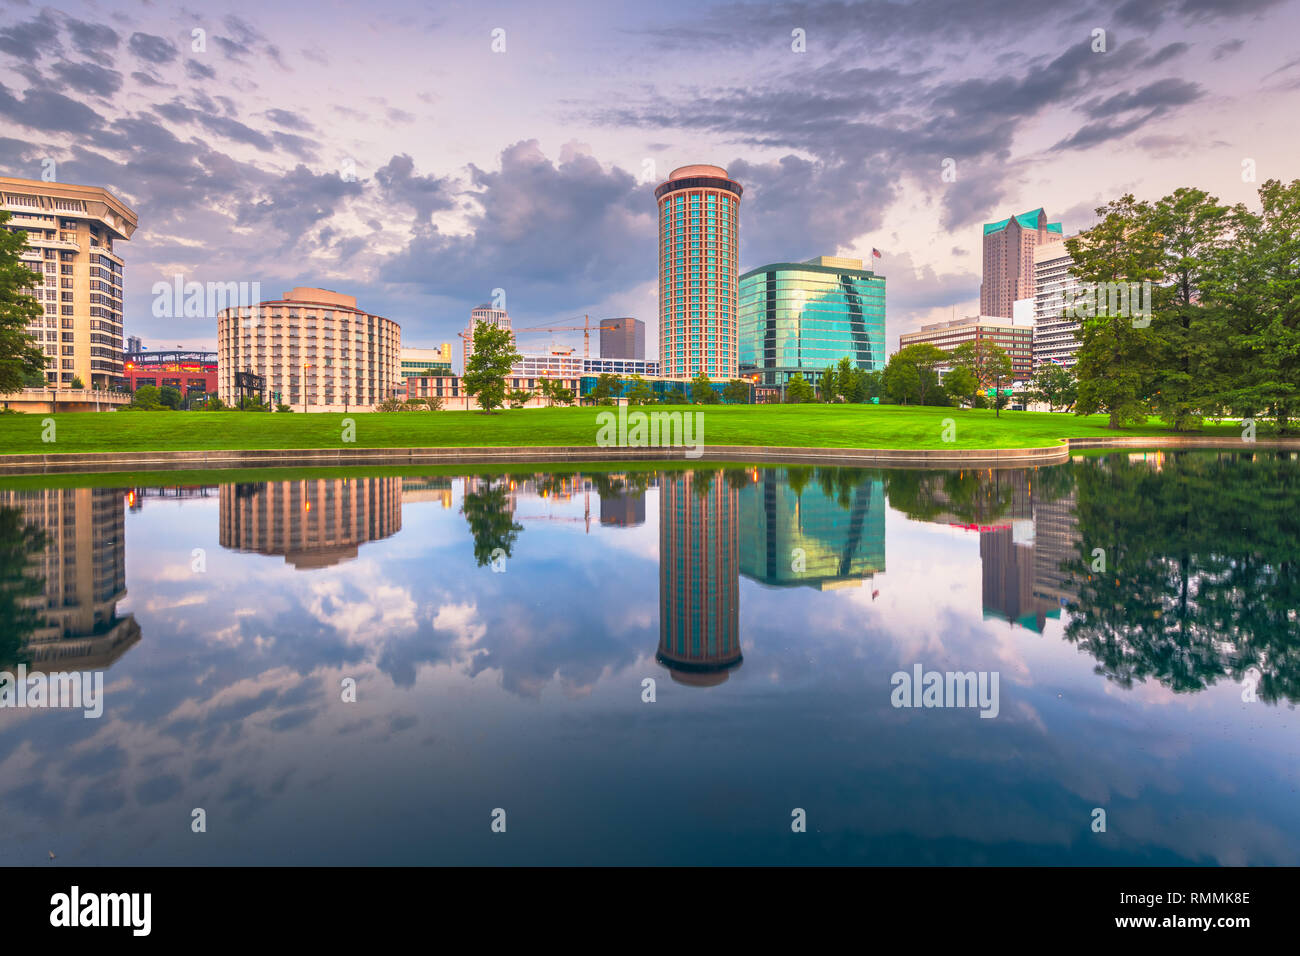 St. Louis, Missouri, USA cityscape at dawn with water reflections. - Stock Image